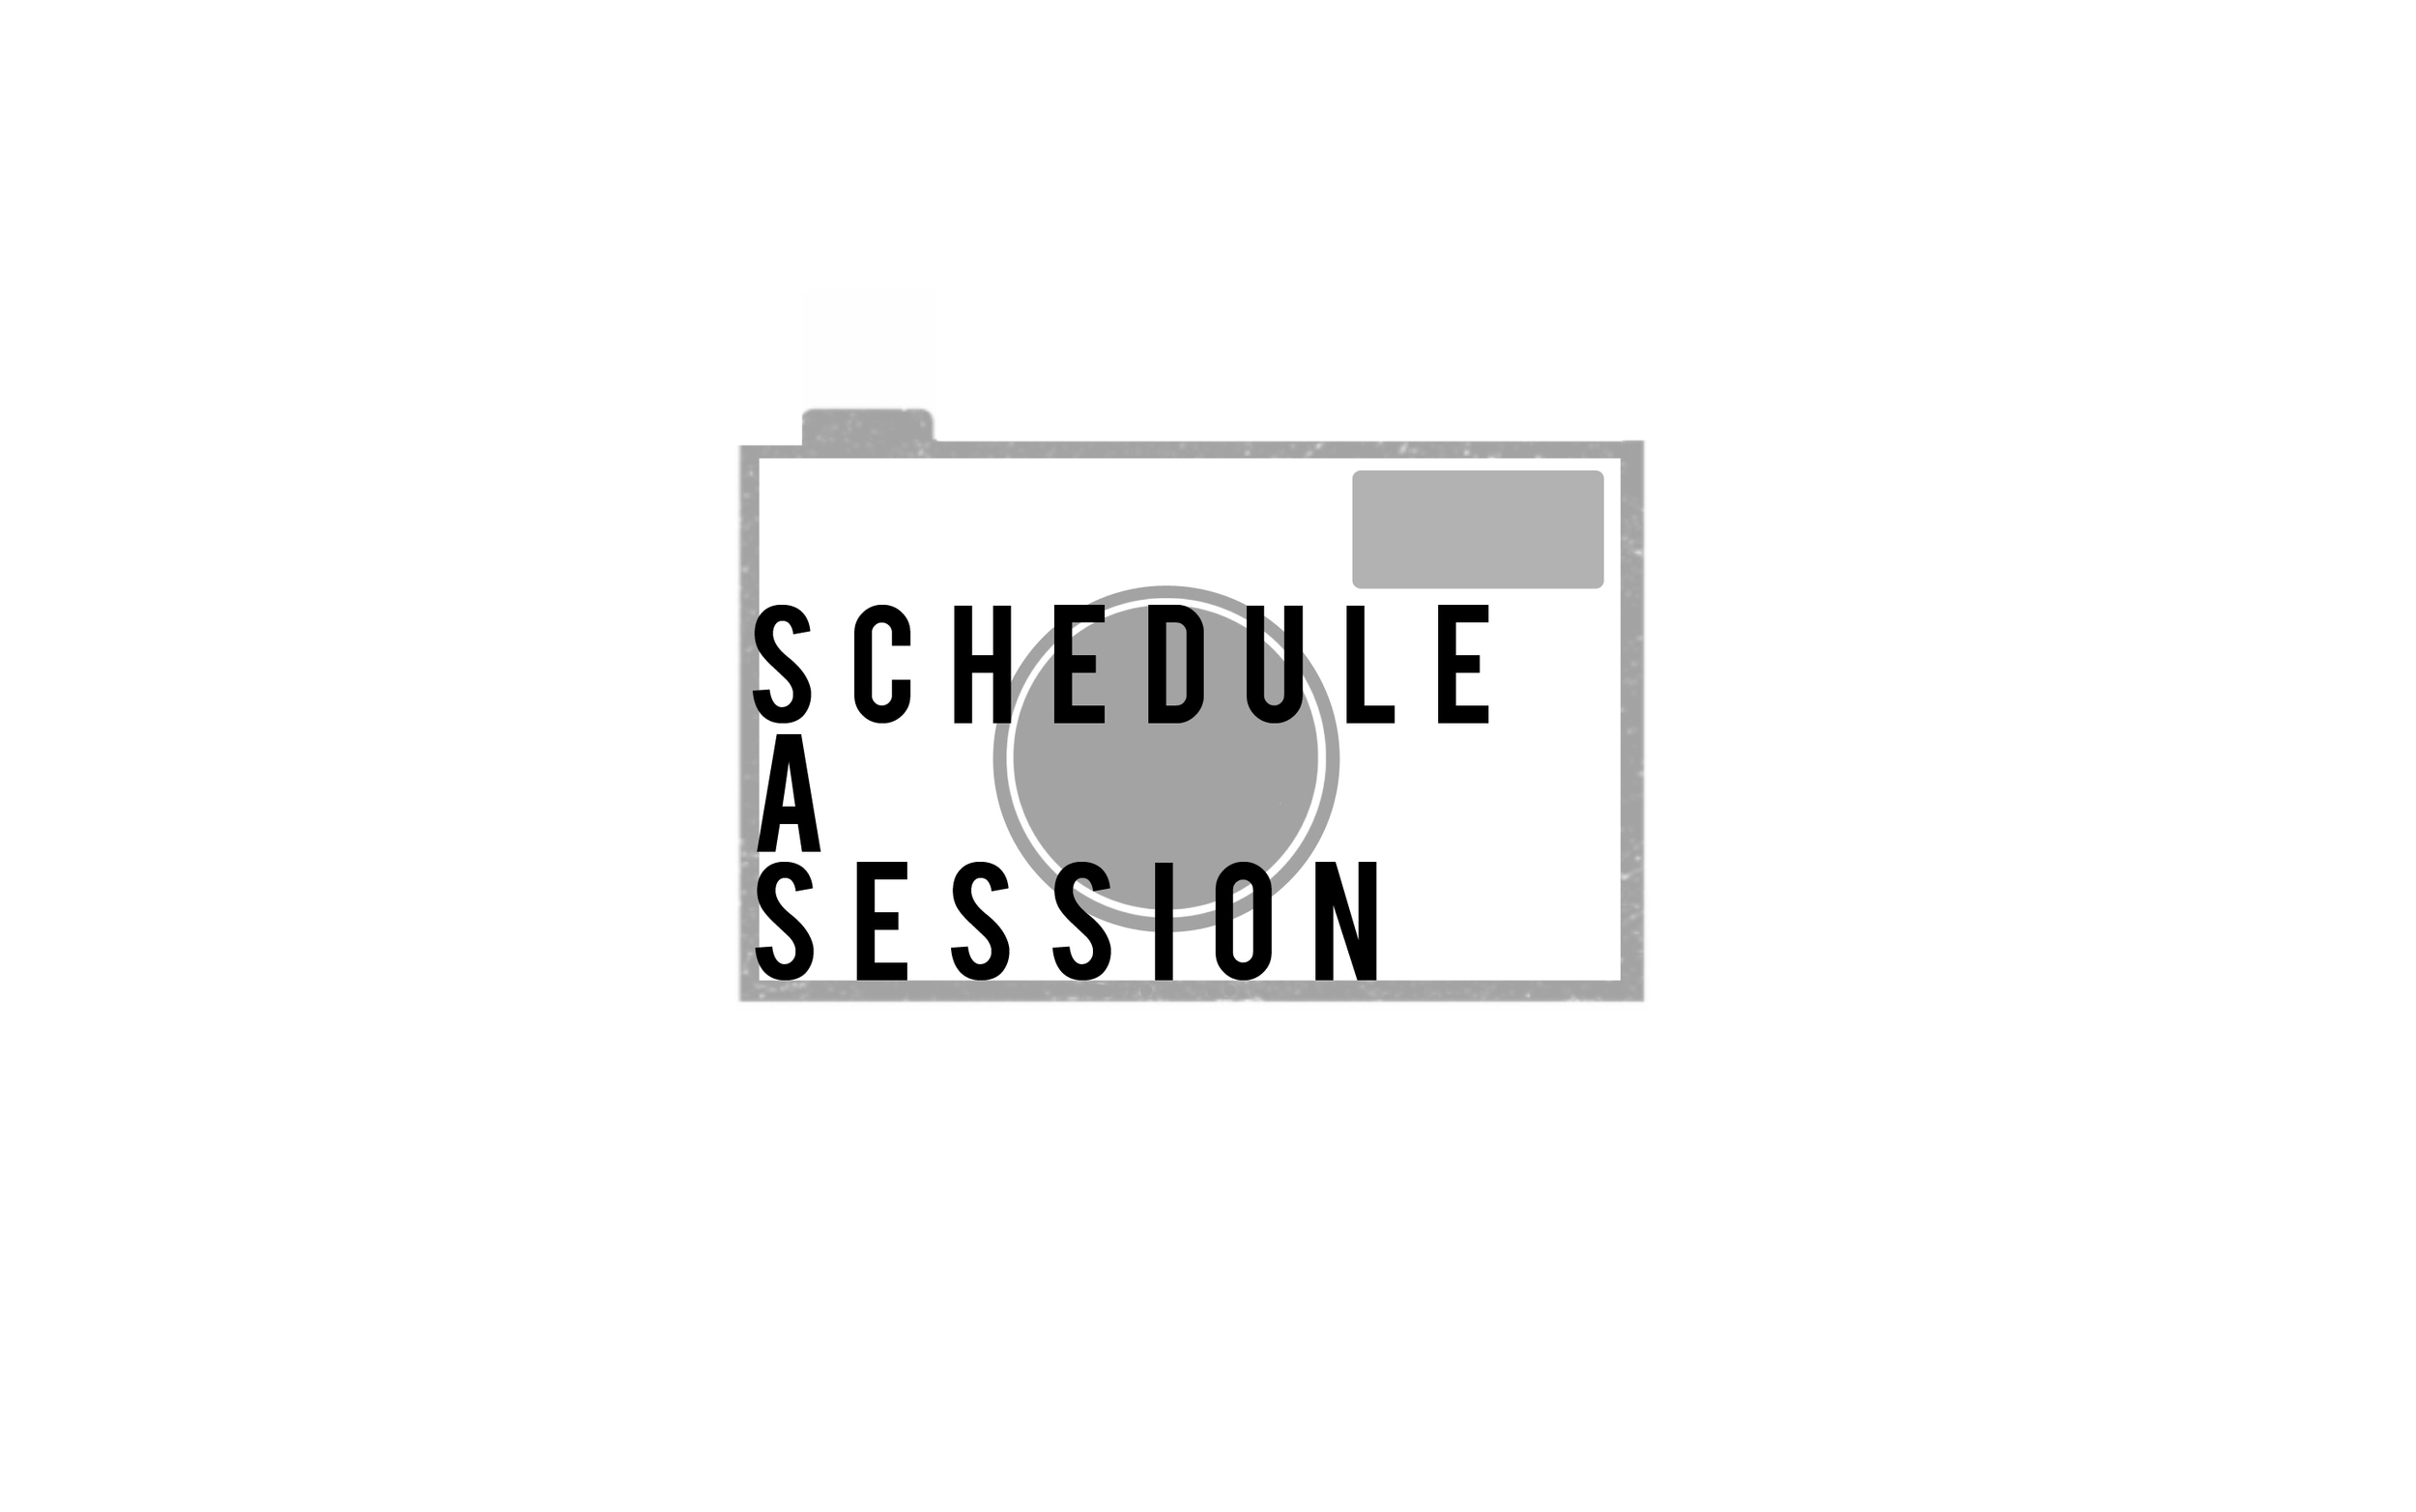 scheduleAsession3.jpg